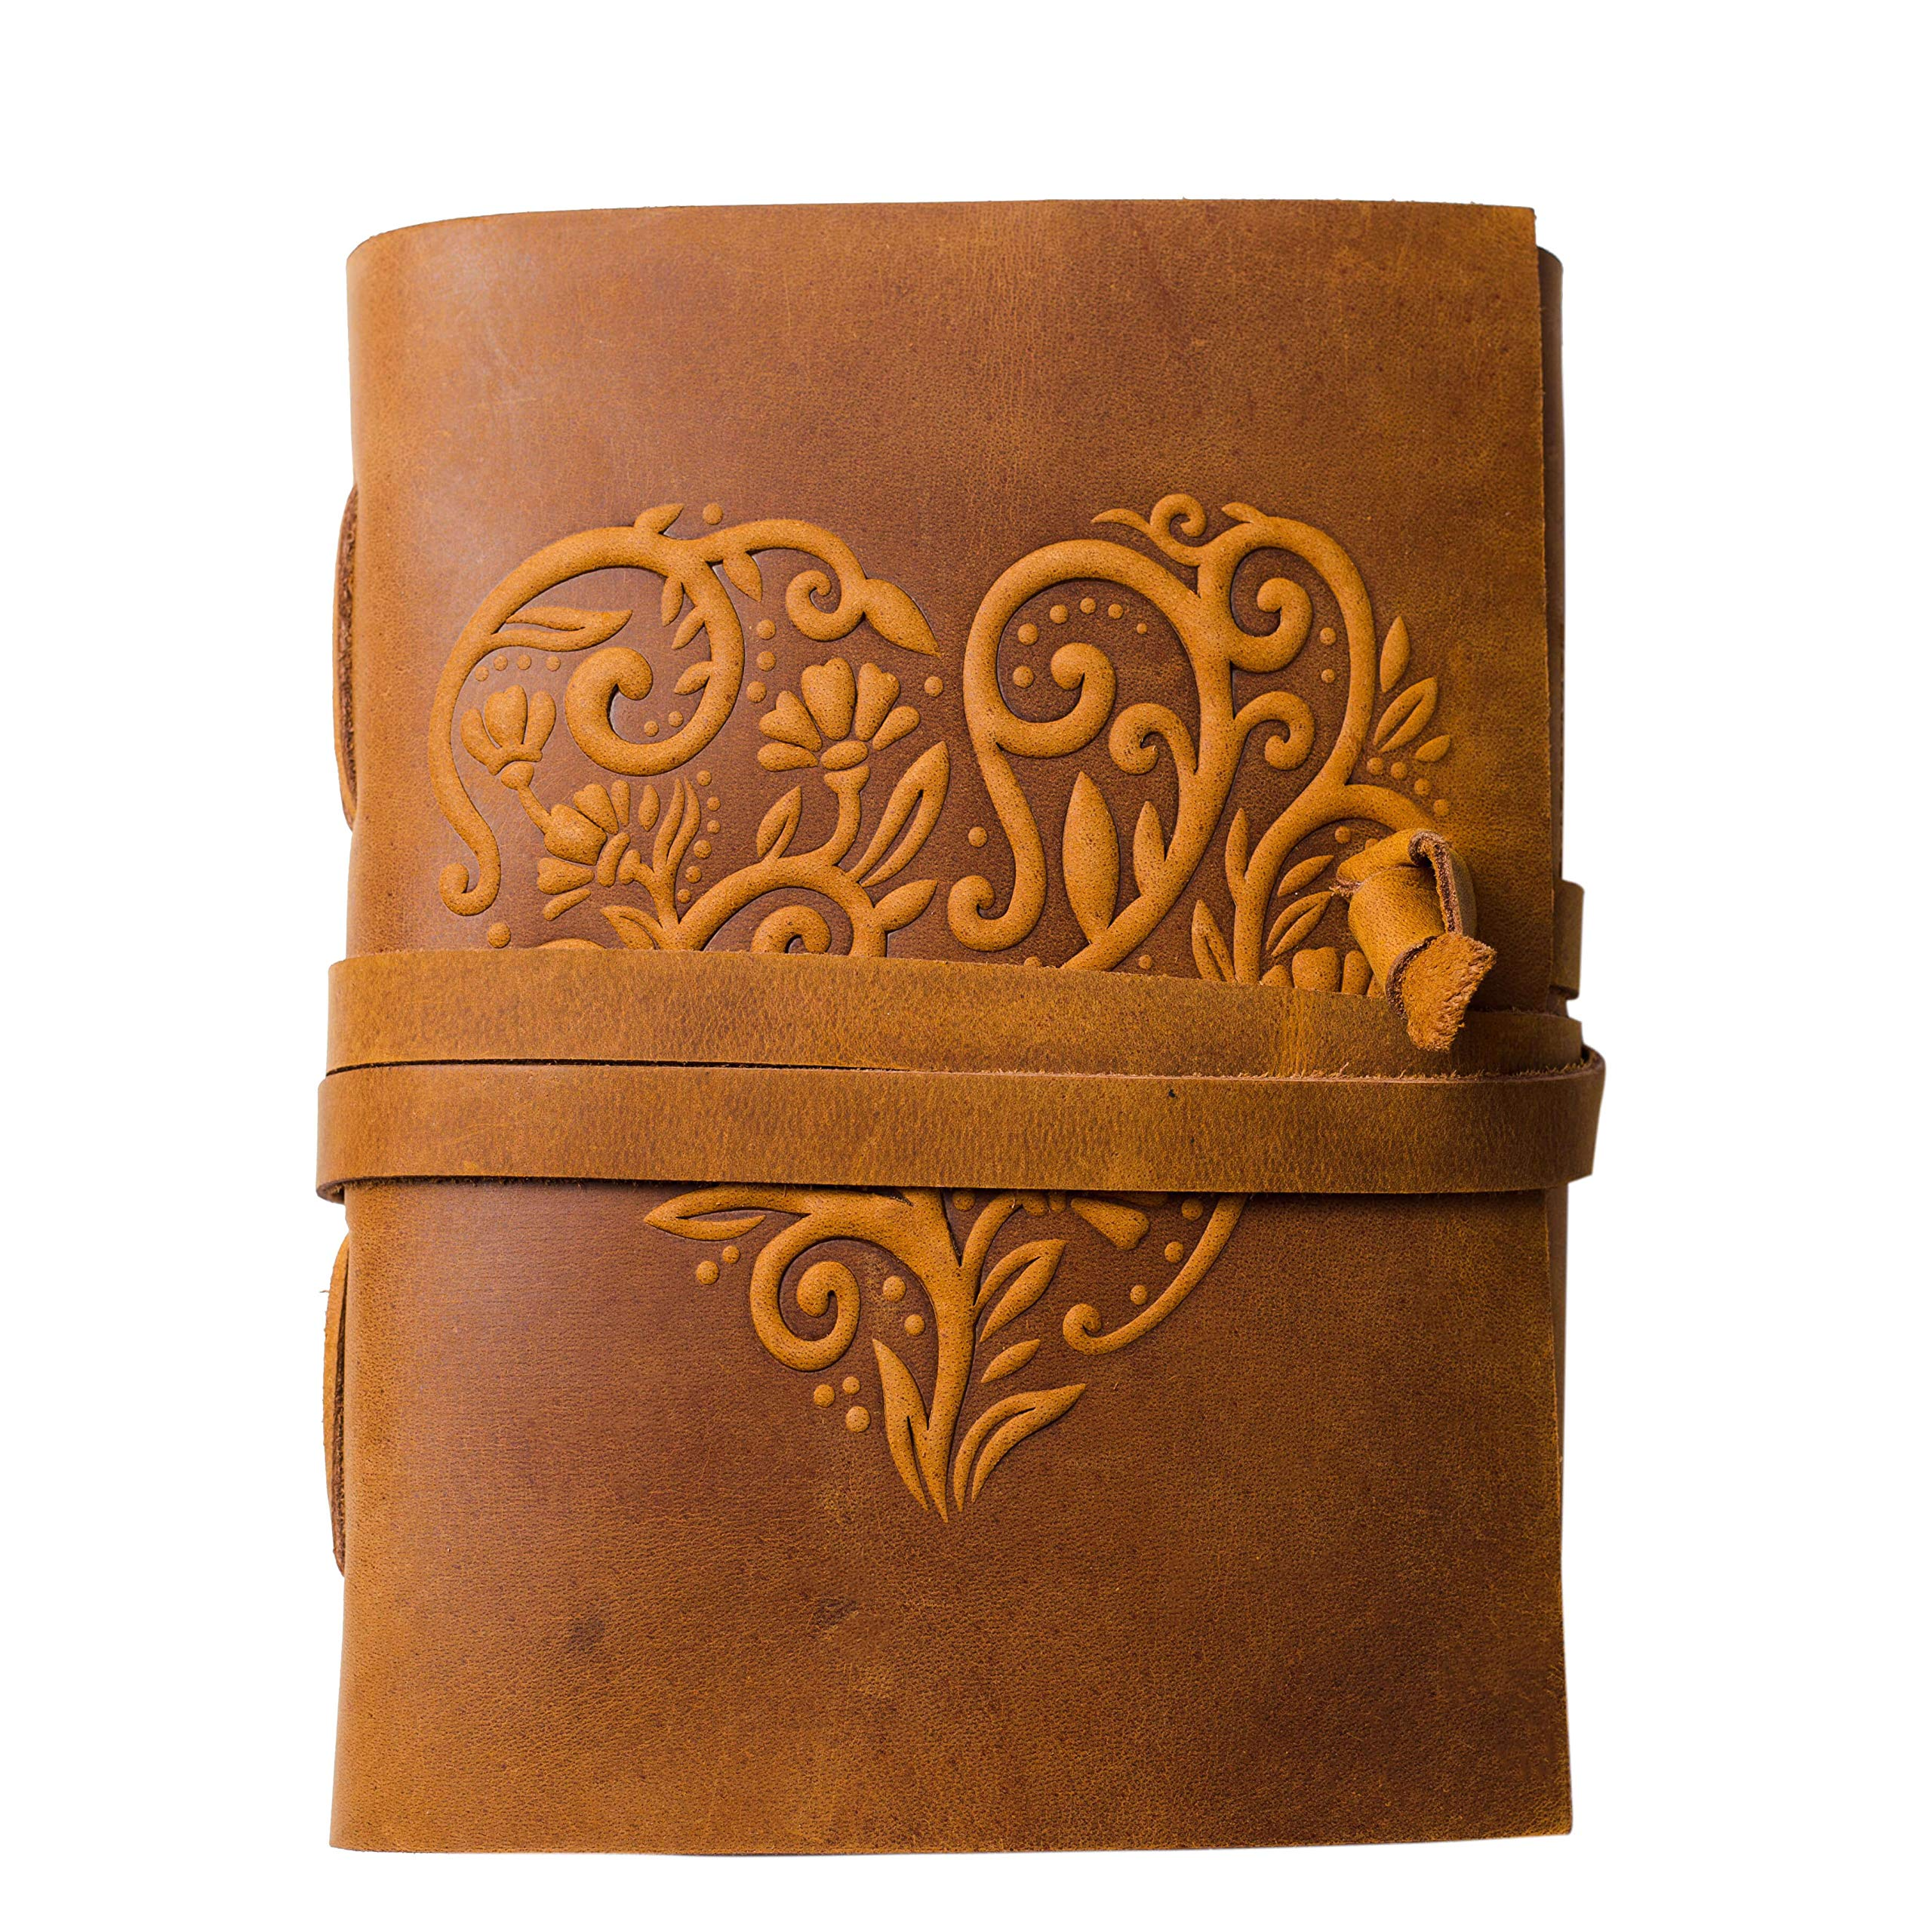 Leather Journal for Women - 240 Pages Kraft Lined Paper Beautiful Embossed Heart Cover Handmade Leather Bound Journal Notebook - 8 x 6 Inches Art Sketchbook, Travel Diary & Journals to Write in by NomadCraftsCo.